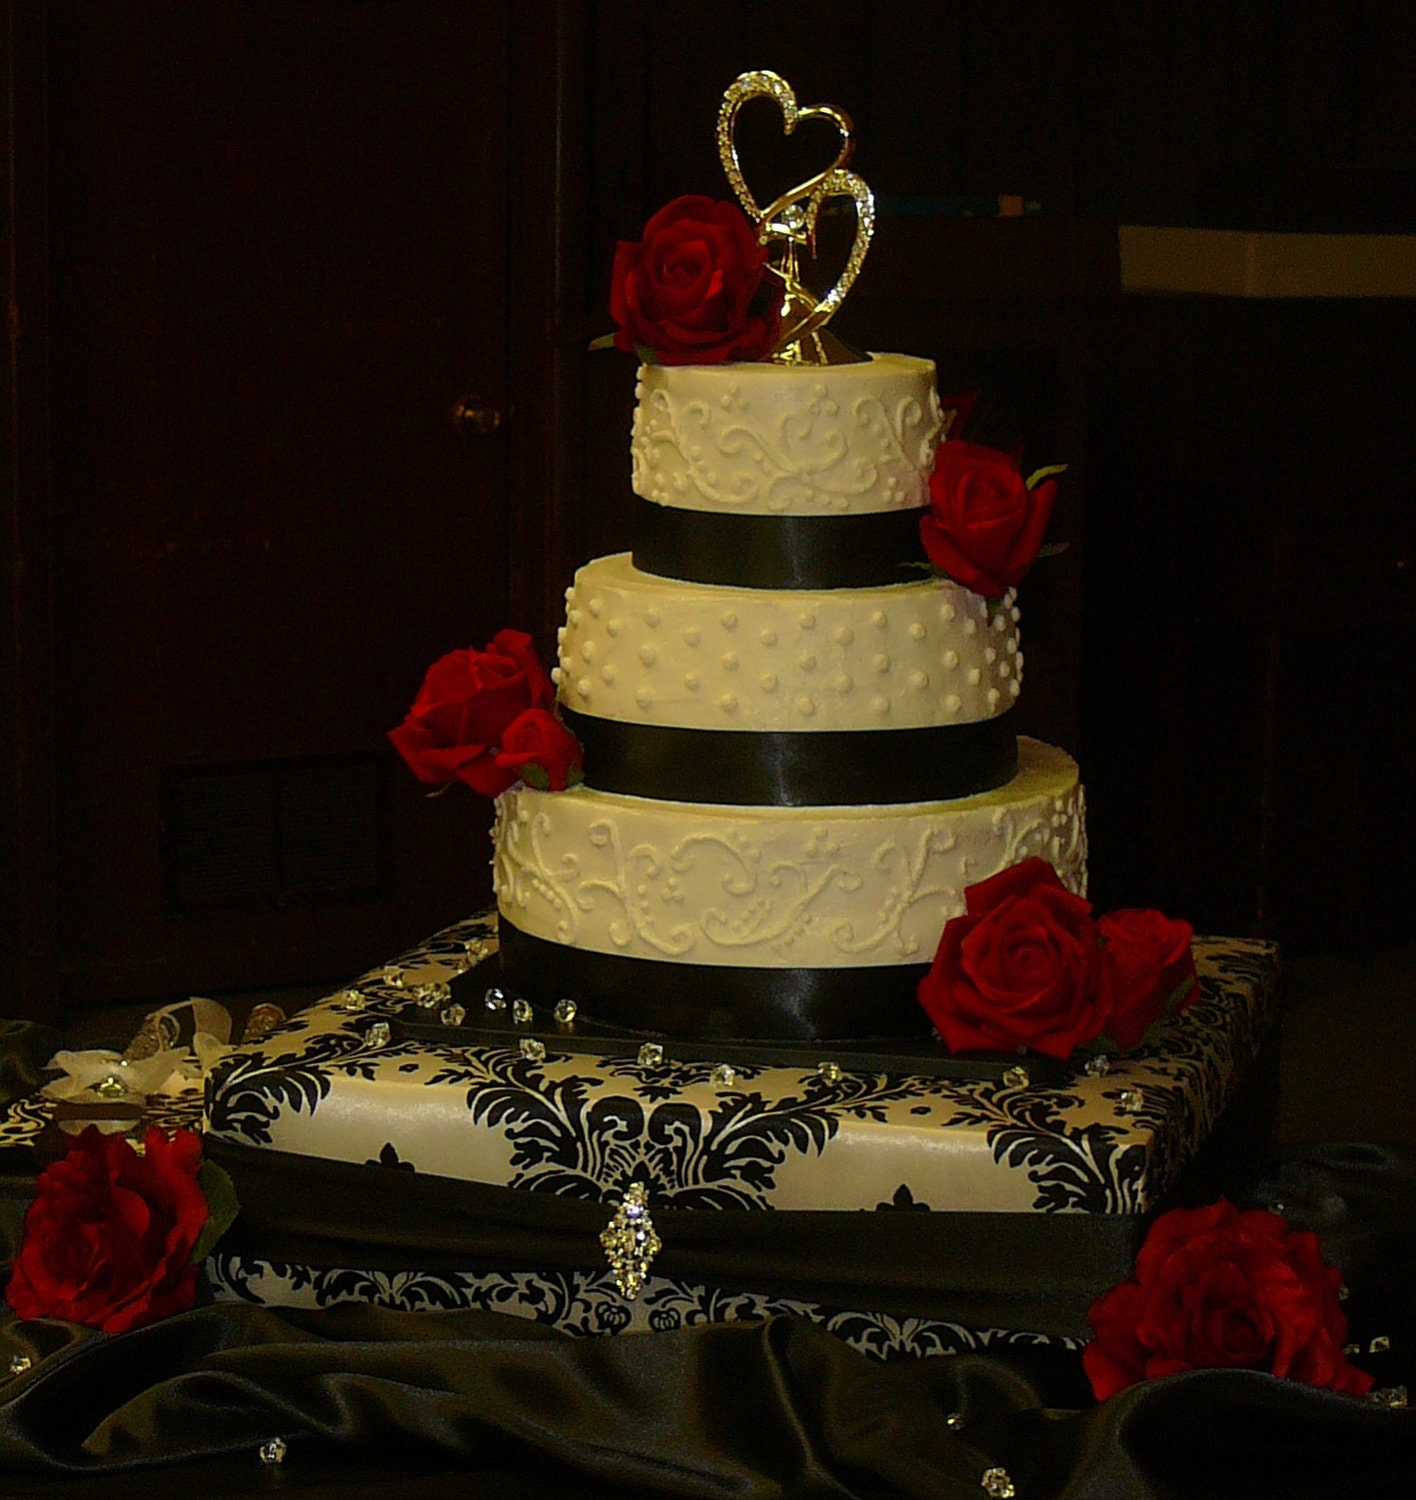 custom made wedding cake stands custom made wedding cake stand damask with black accent 18 x 13216